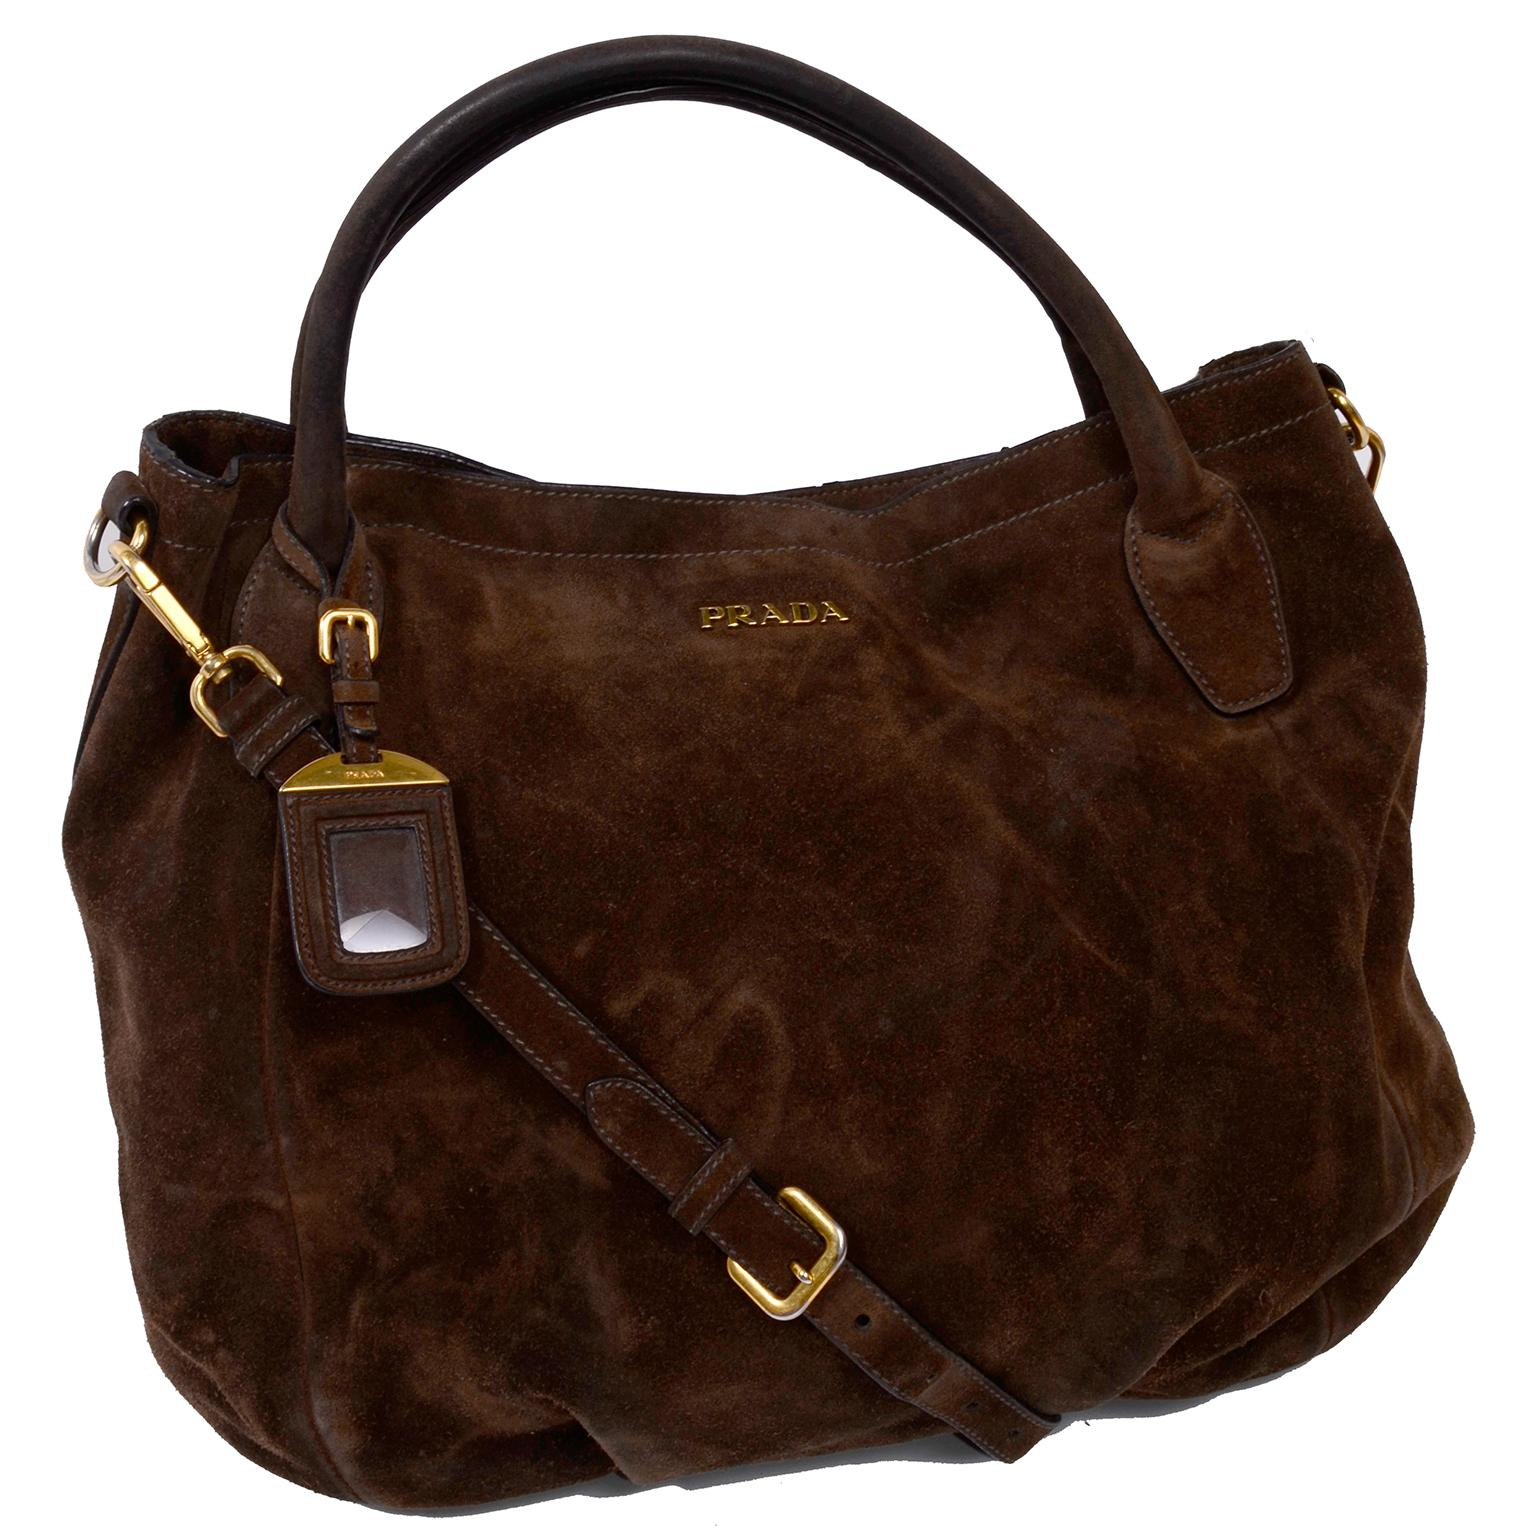 f16228301157be Prada Scamosciato Handbag in Chocolate Brown Suede Shoulder Bag For Sale at  1stdibs